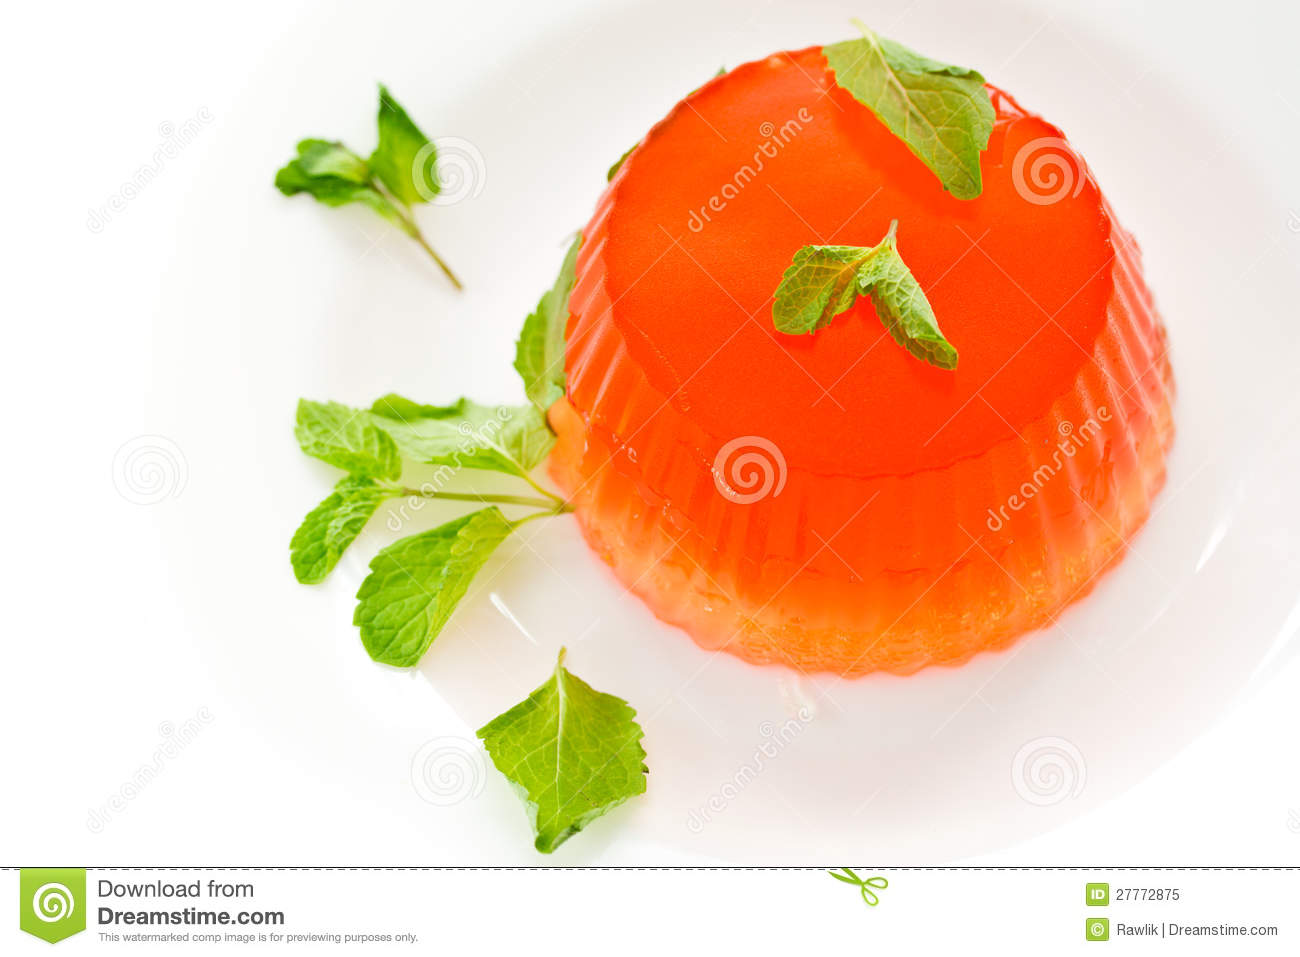 Fruit Jellies Royalty Free Stock Photo - Image: 27772875